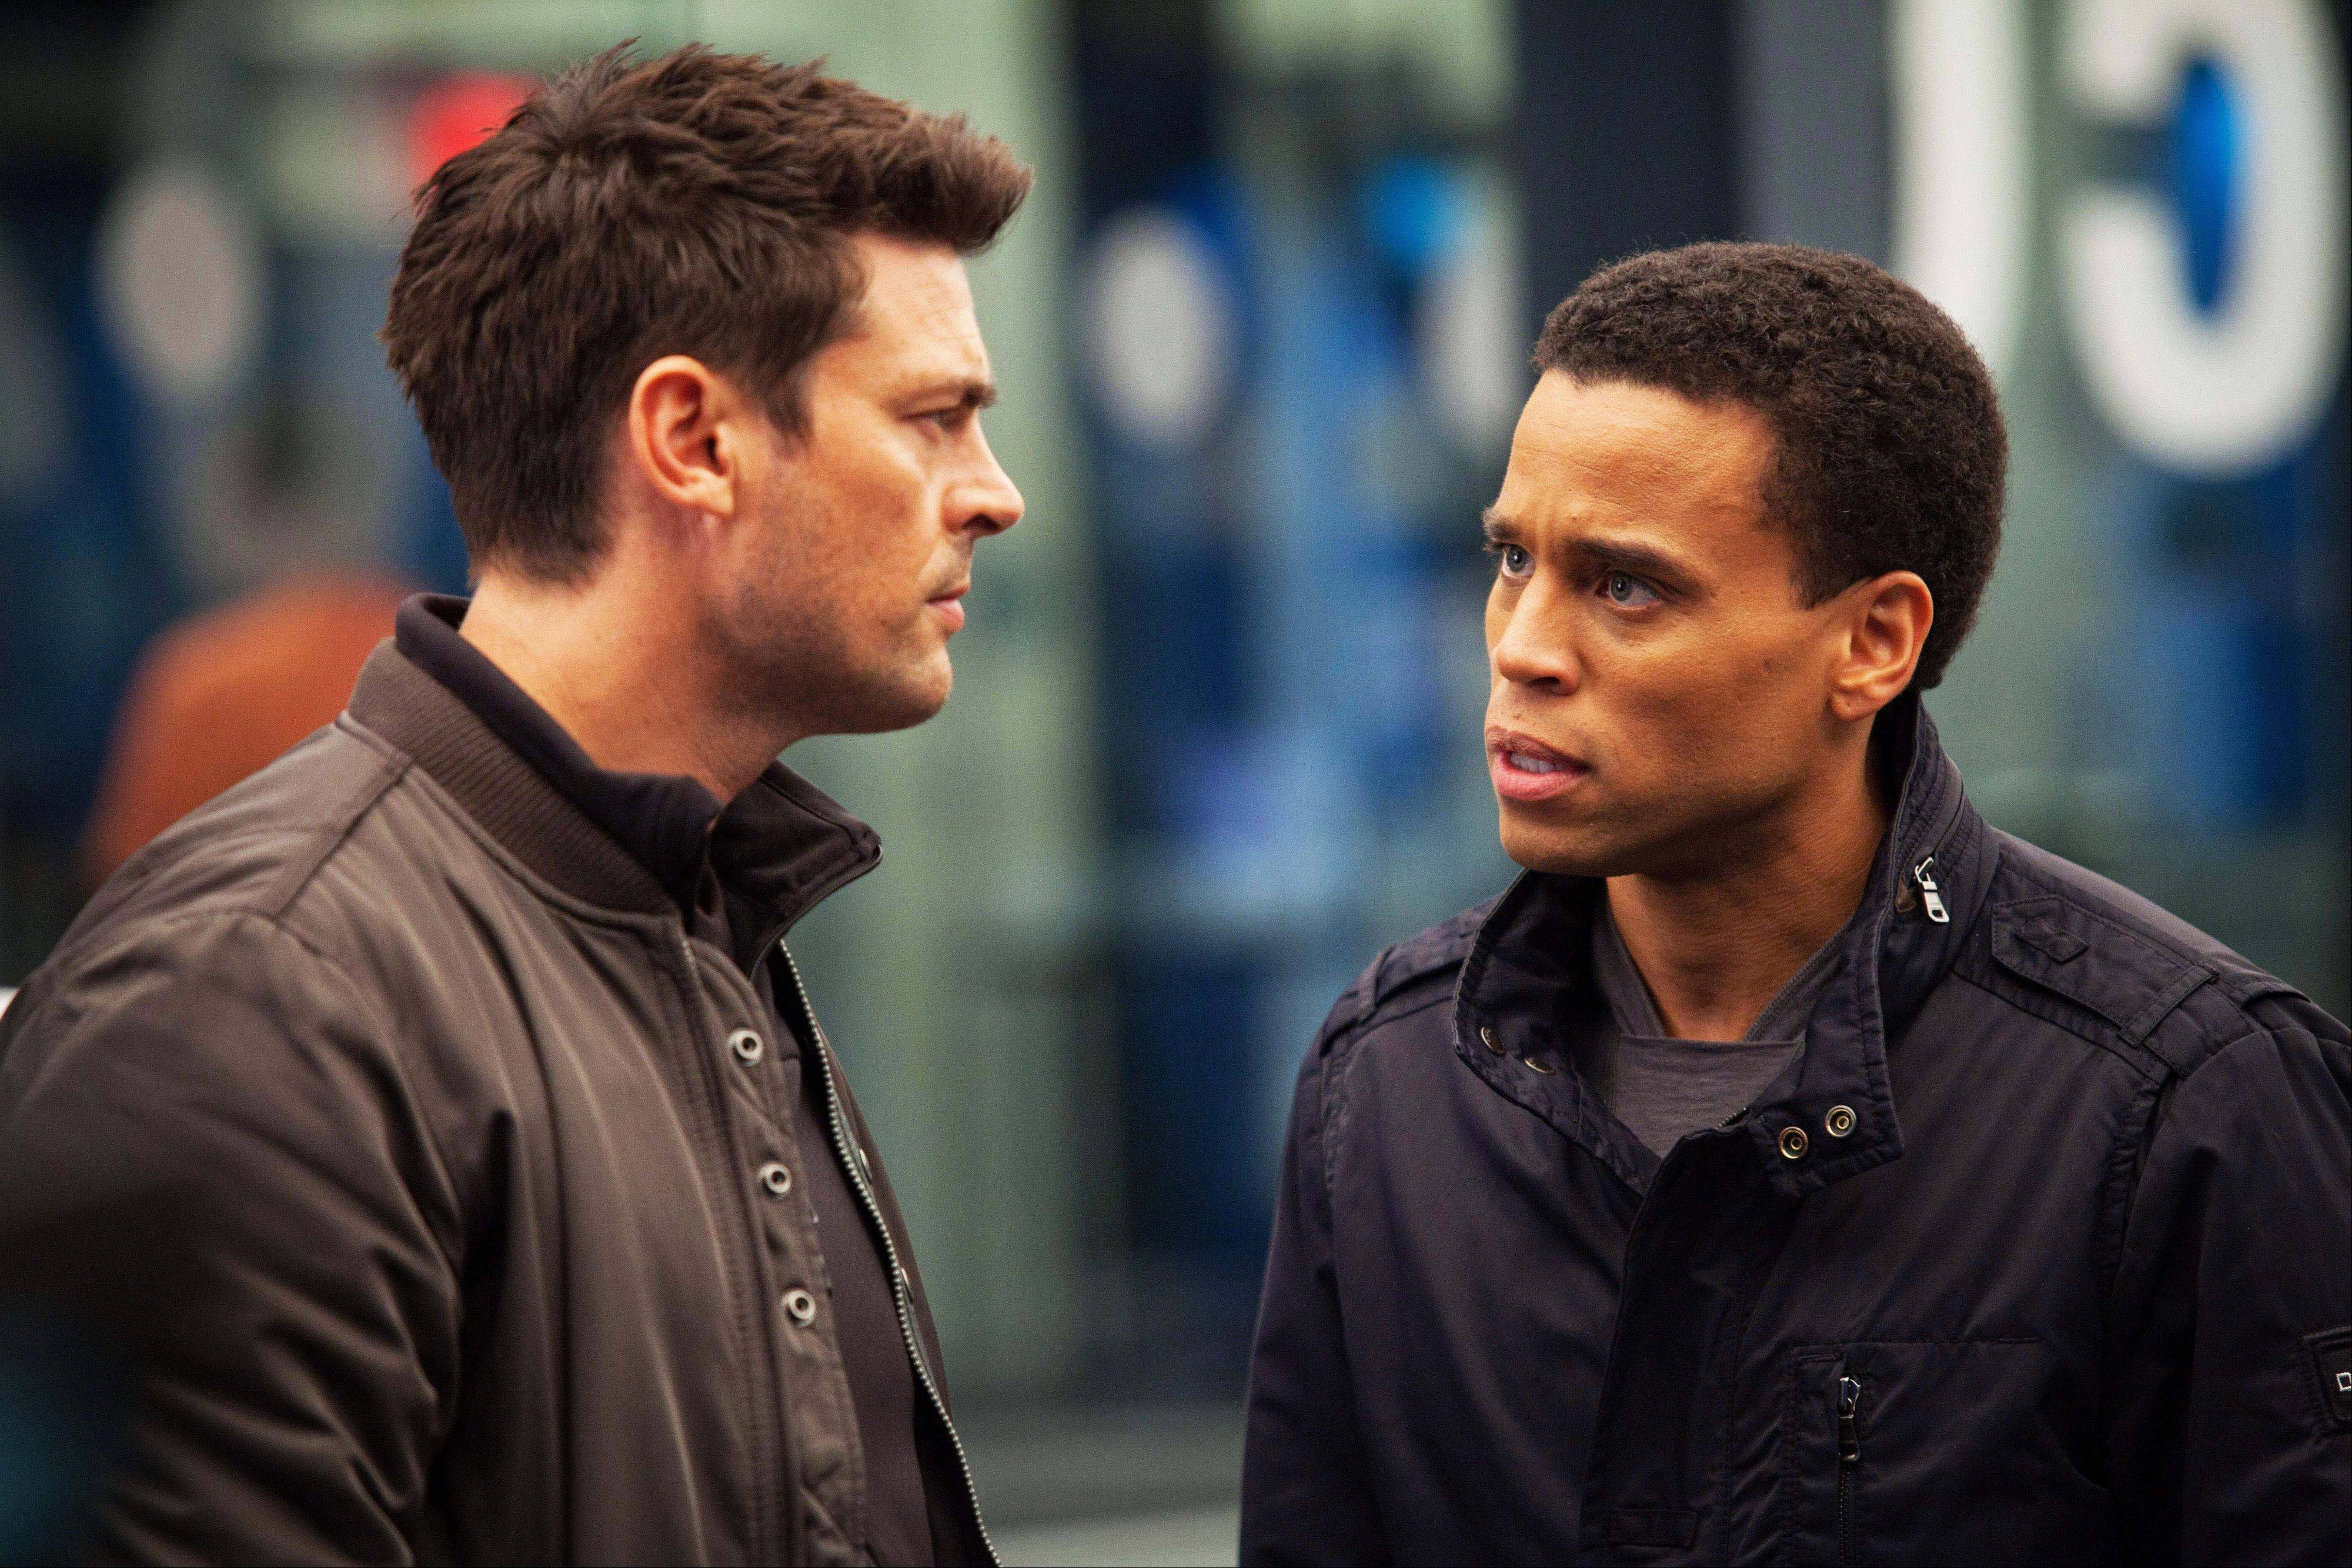 Karl Urban, left, as John Kennex and Michael Ealy as Dorian partner to fight crime in the year 2048 in the new FOX drama, �Almost Human,� premiering this fall.